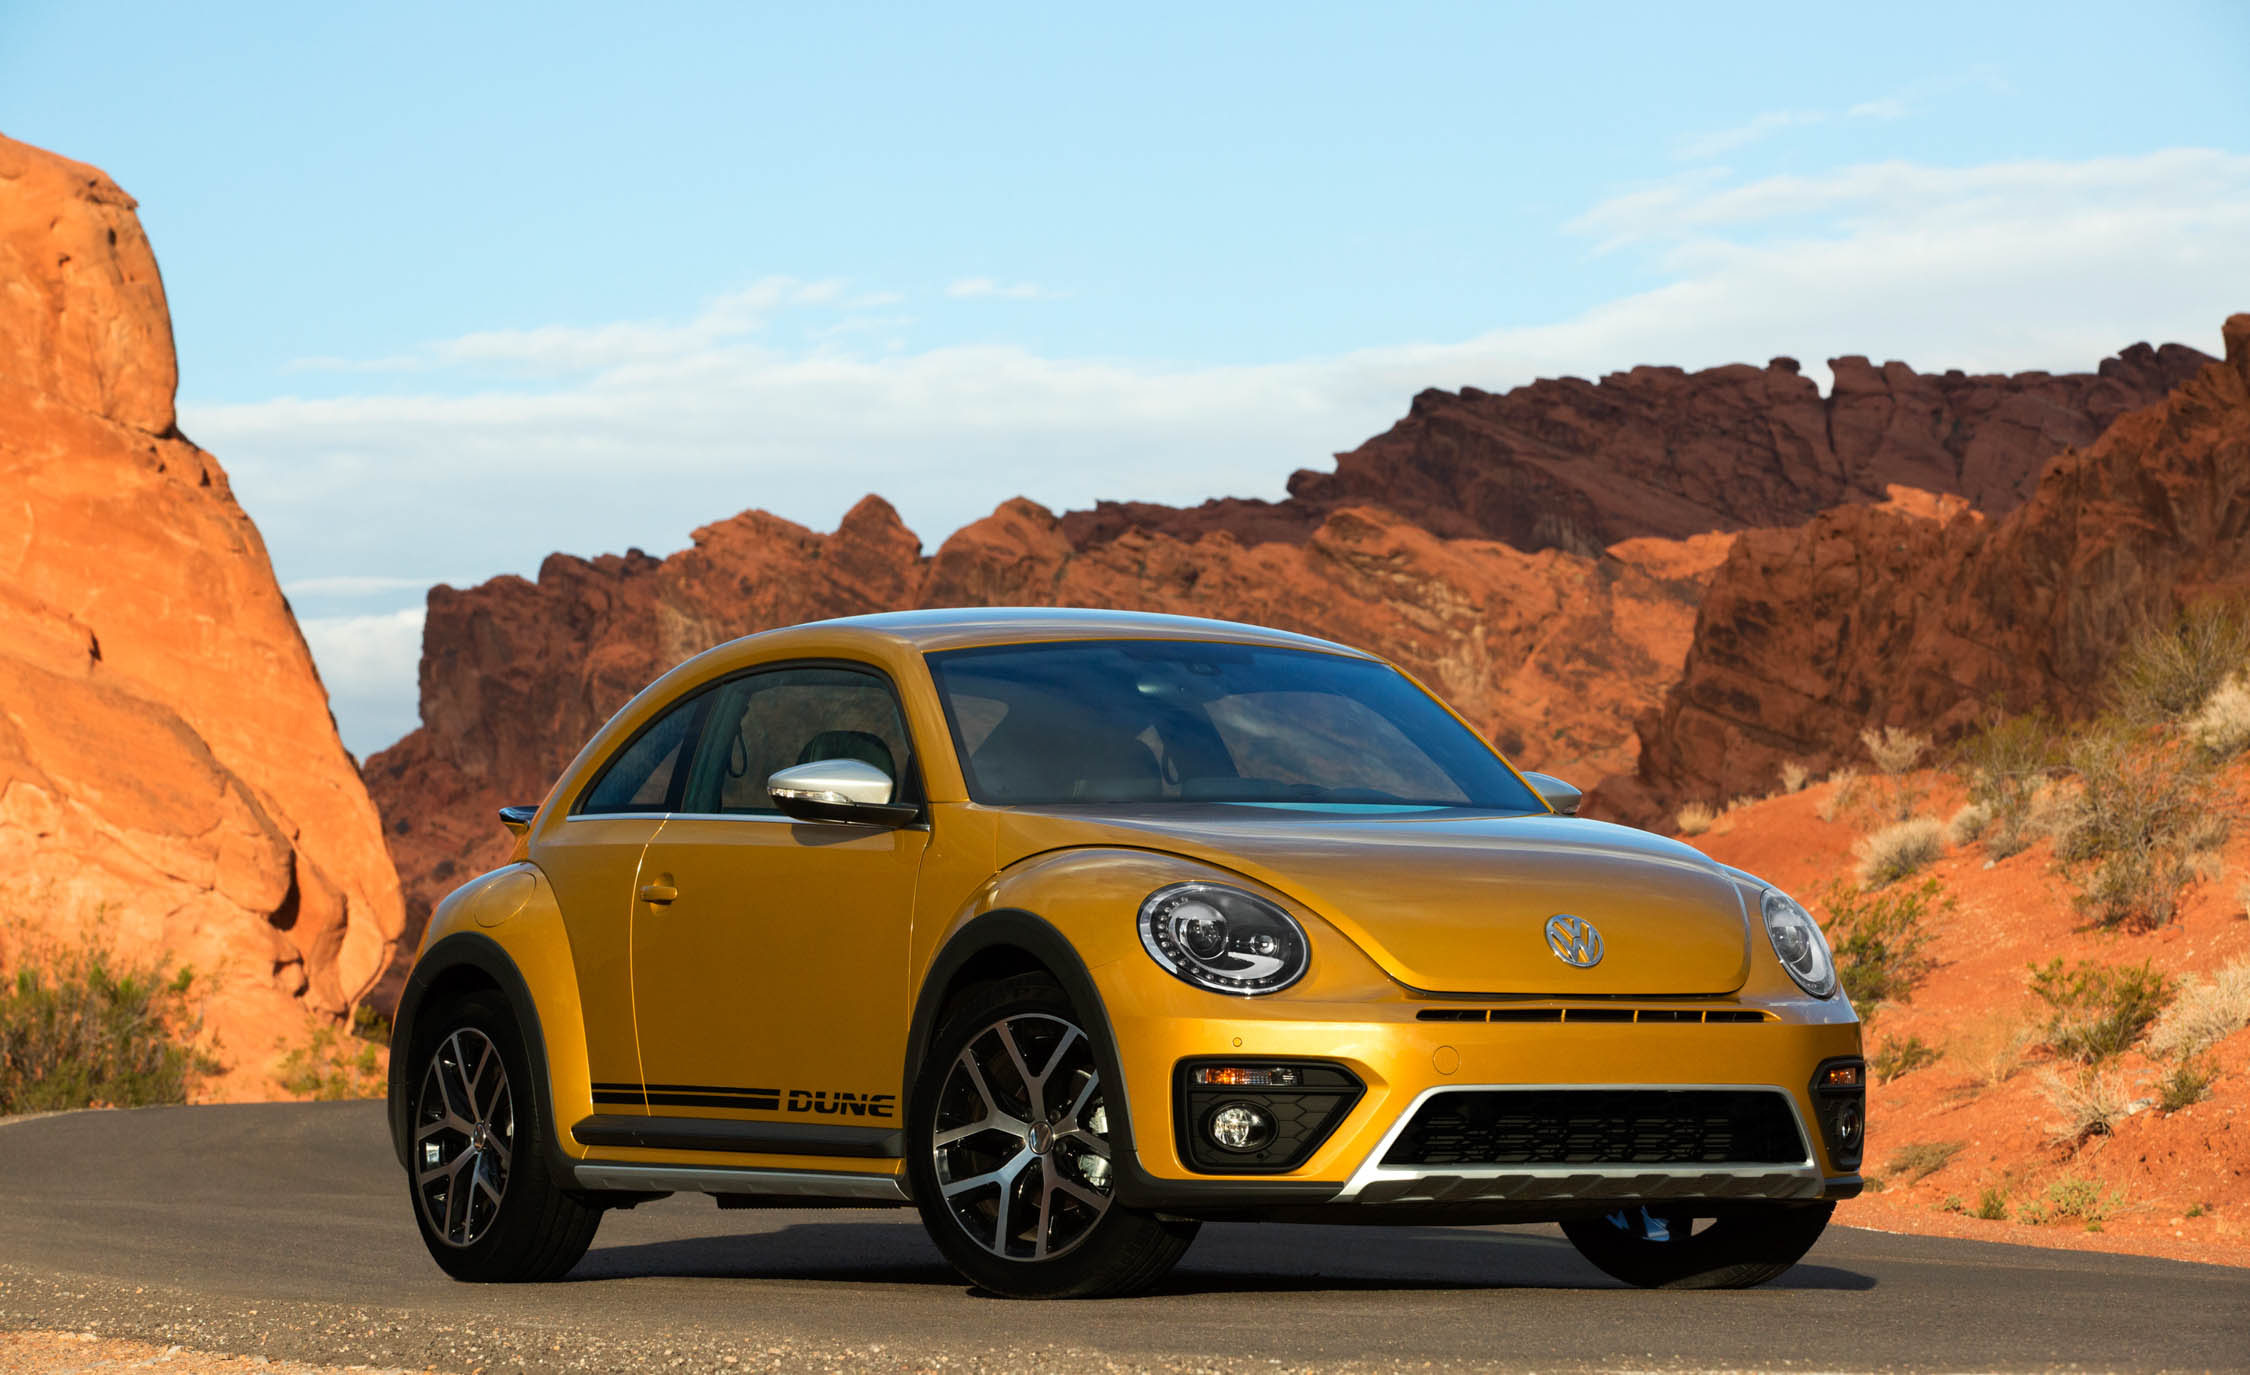 2016 Volkswagen Beetle Dune Coupe Exterior Full Front And Side (View 25 of 32)